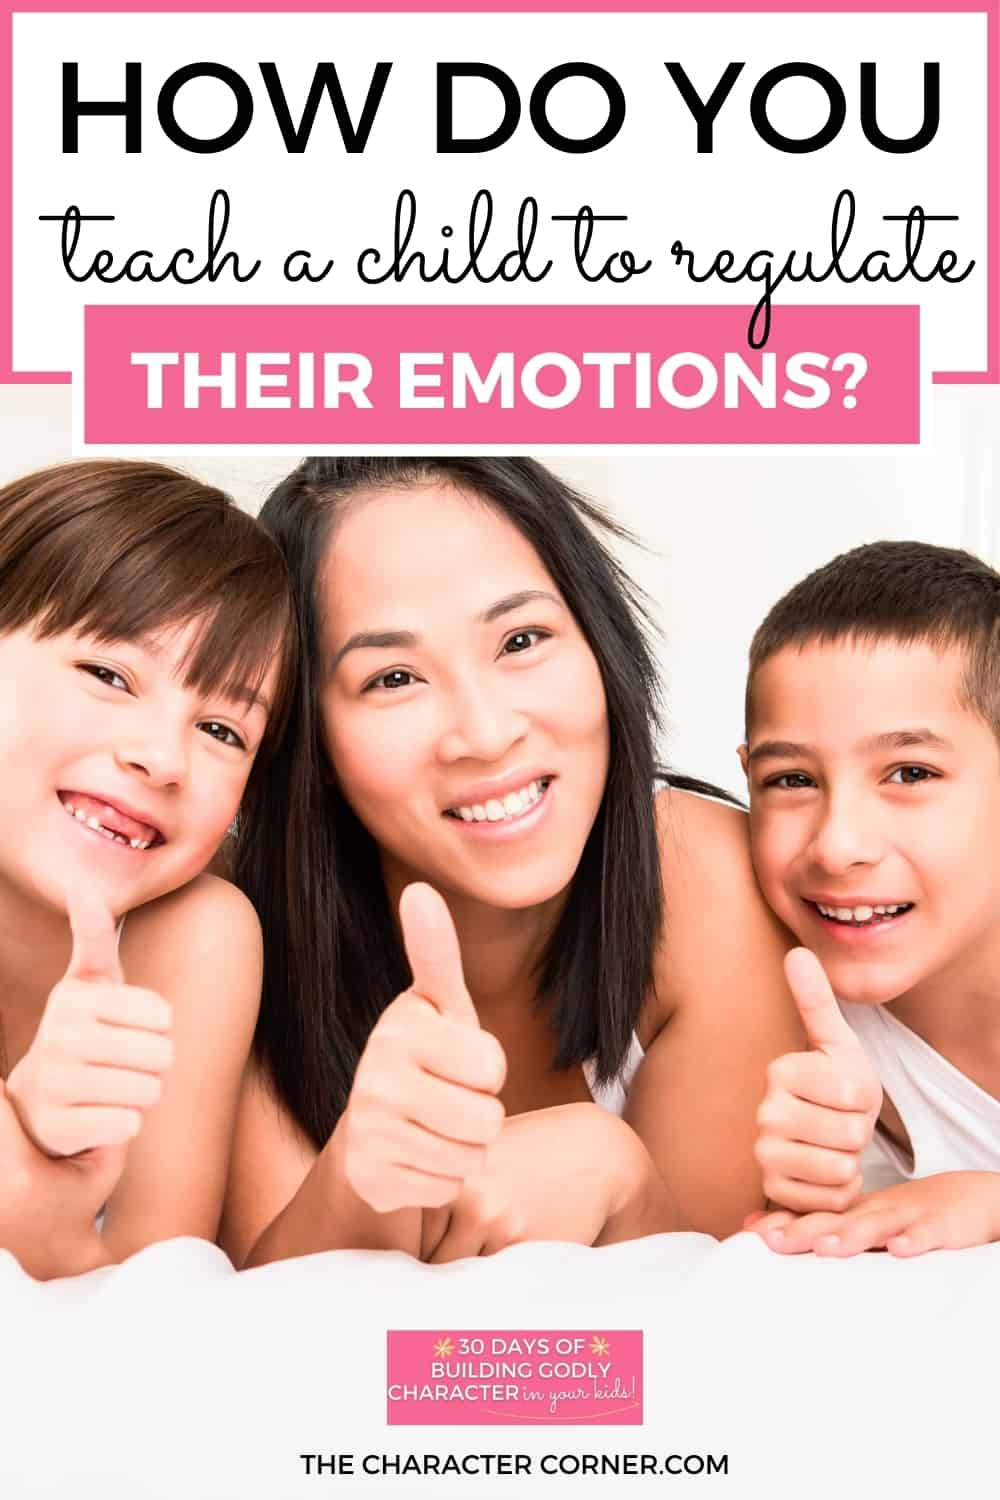 Happy mom with emotionally self controled kids text on image reads: How Do You Teach A Child To Regulate Their Emotions?